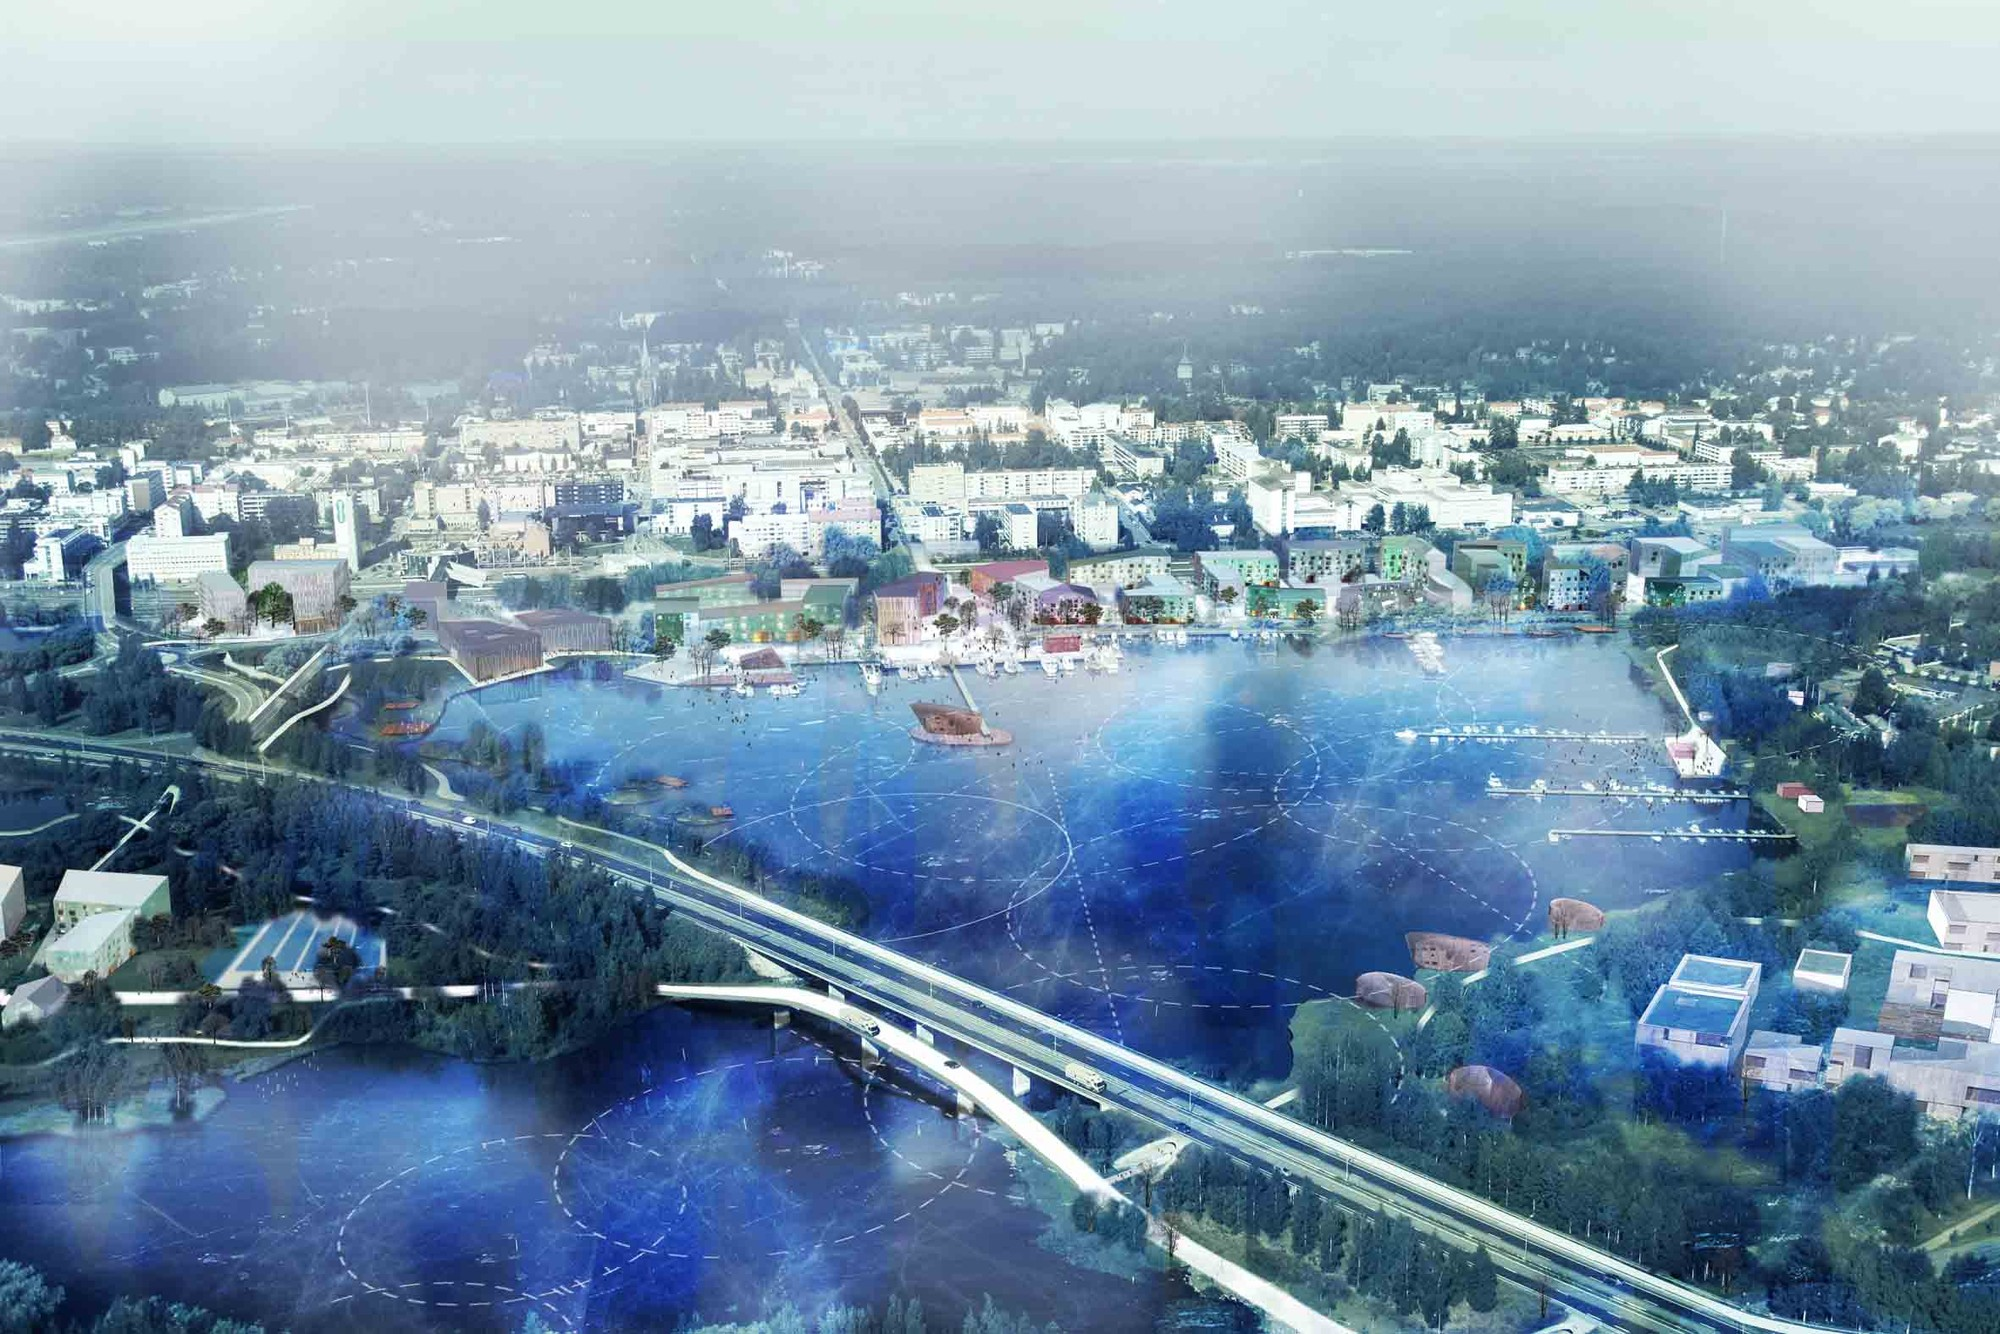 'Resilient Mikkeli' Third Prize Winning Proposal / Mandaworks + Hosper Sweden, Courtesy of Mandaworks + Hosper Sweden